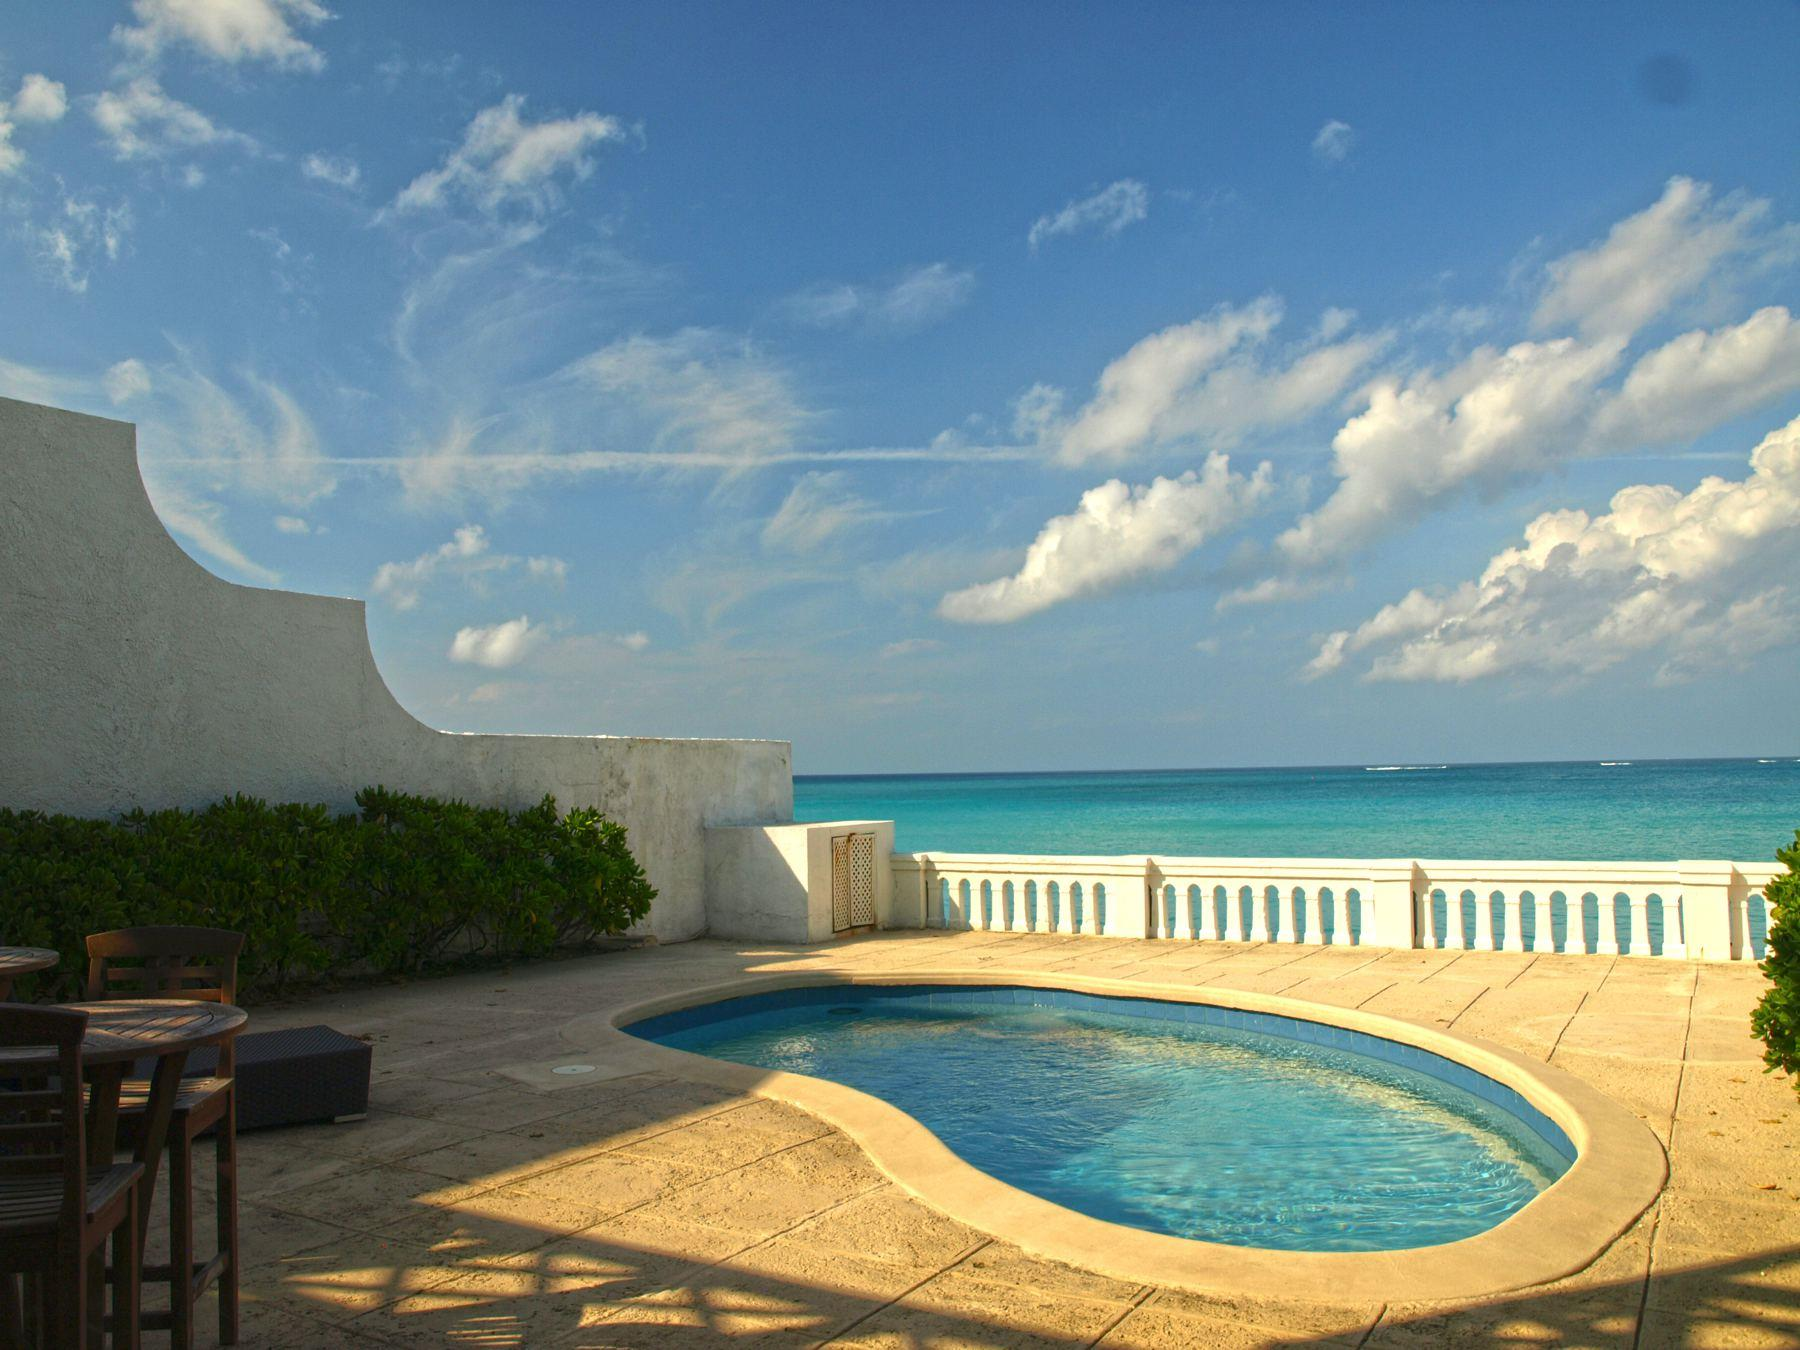 Condominium for Sale at Caprice #9 Other Bahamas, Other Areas In The Bahamas Bahamas